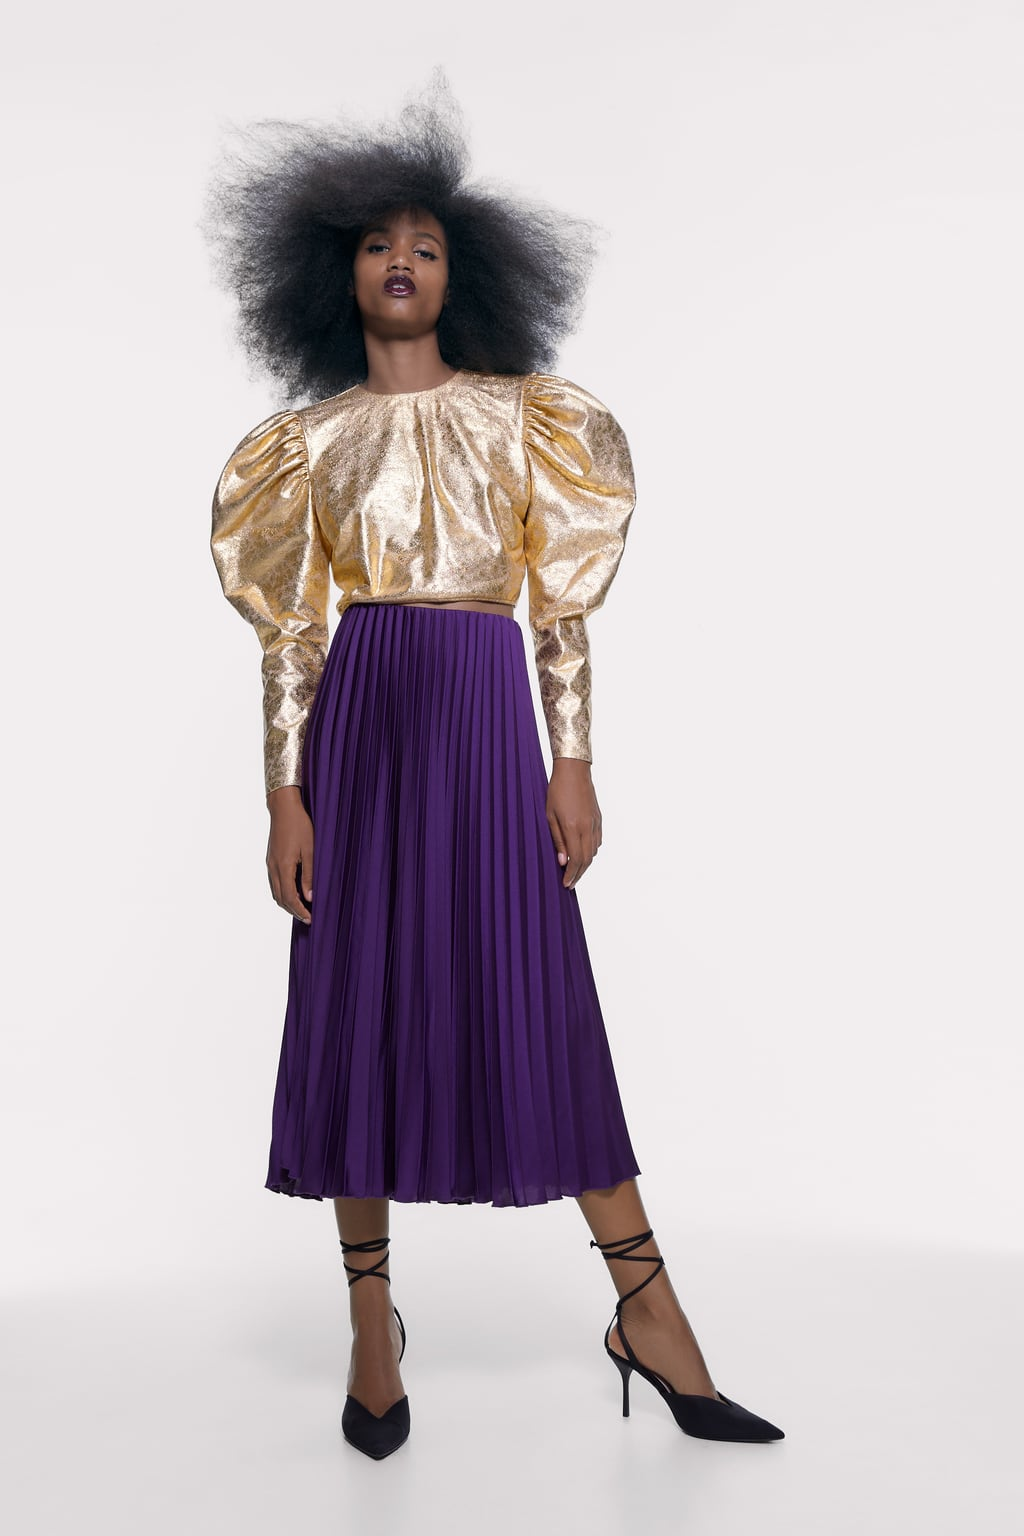 METALLIC EFFECT CROPPED BLOUSED, $39.90 @zara.com